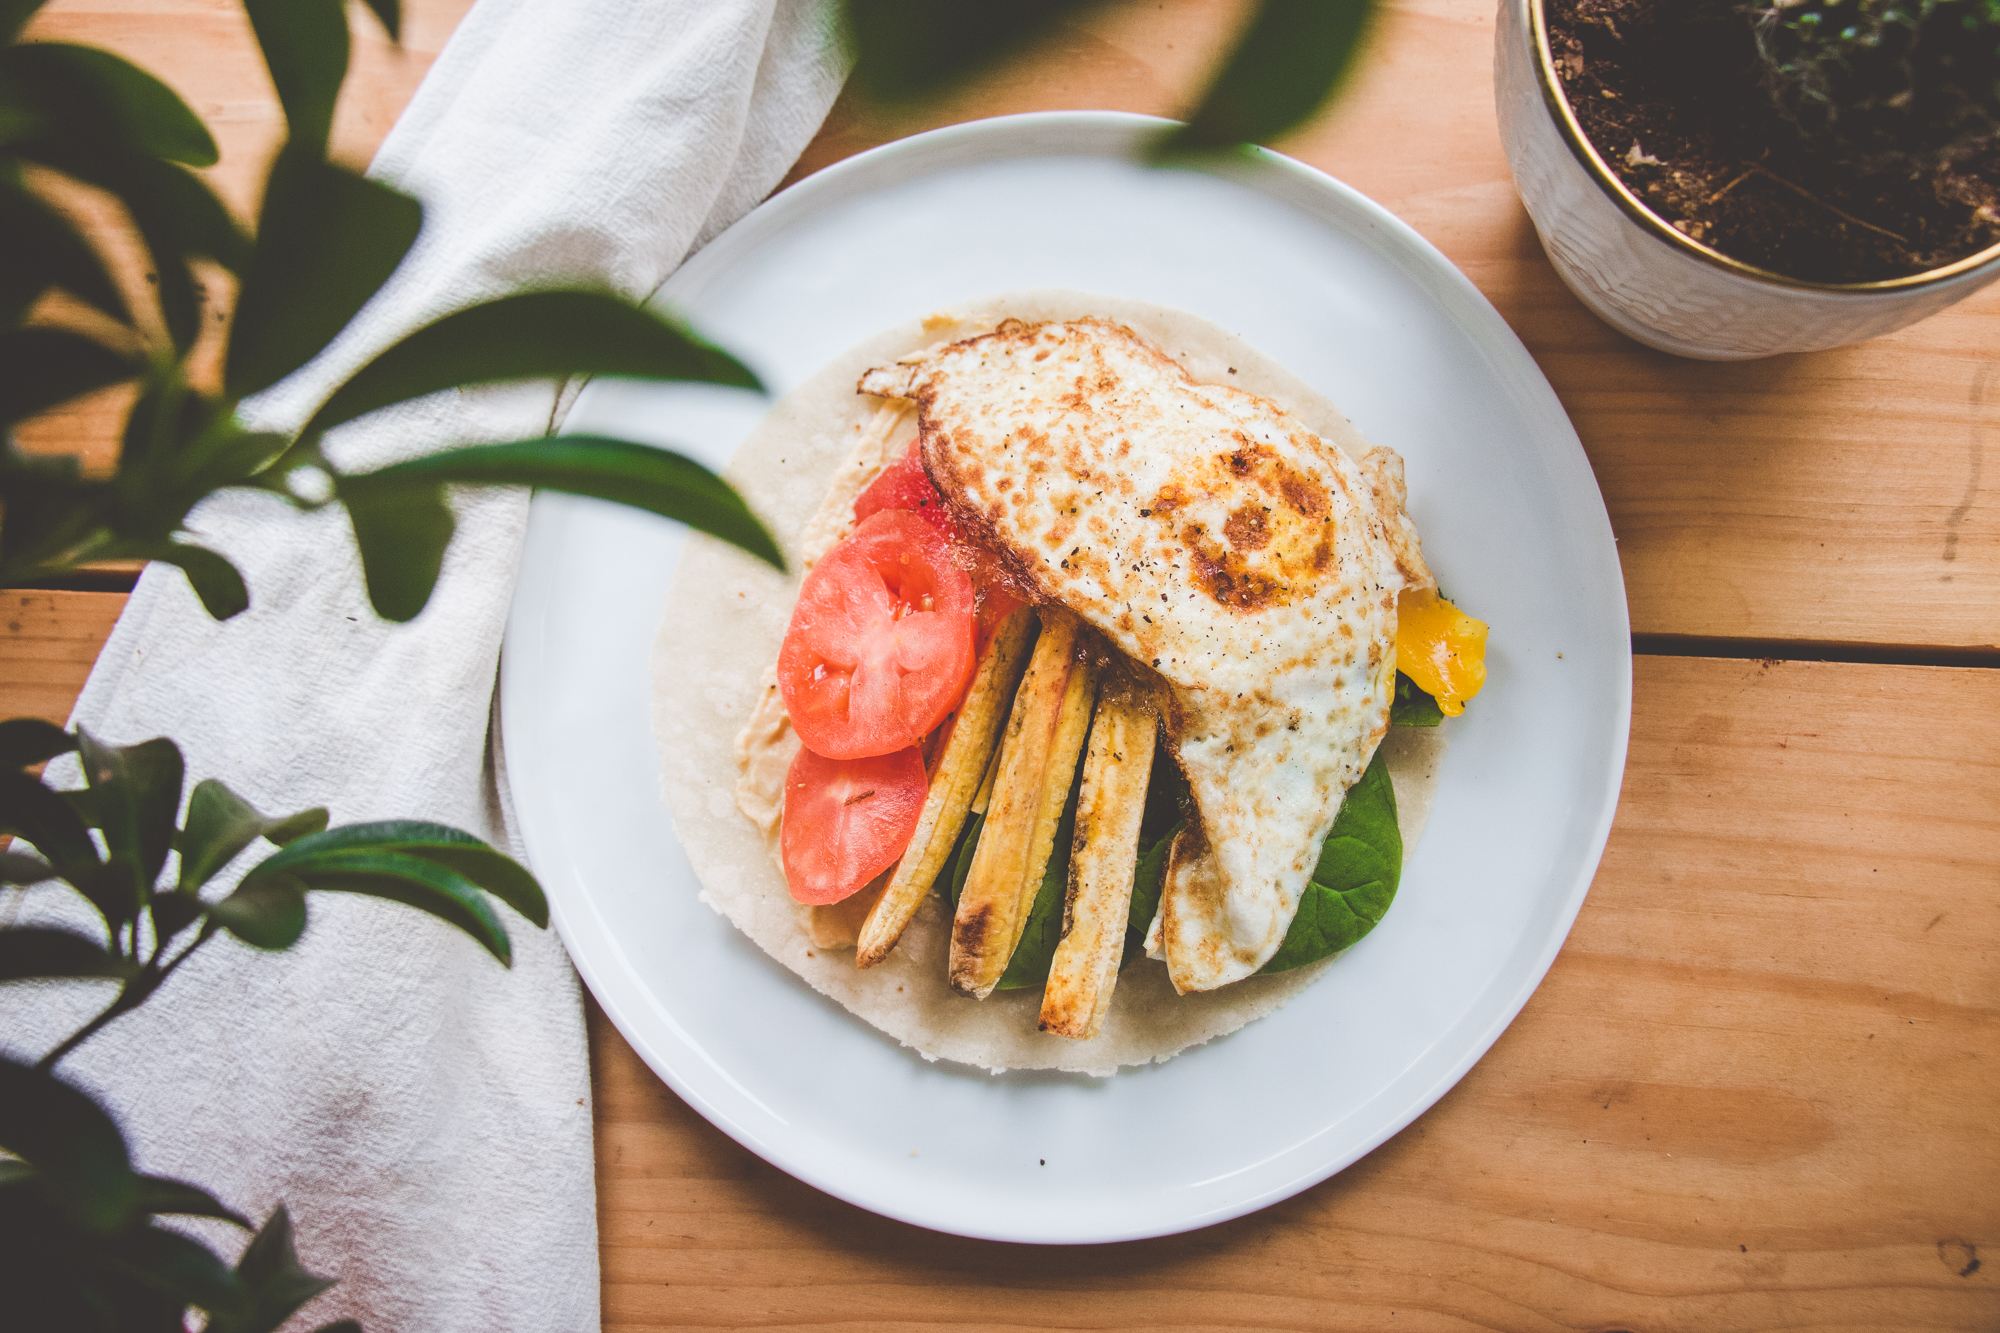 Plantain & Egg Sandwich Wraps